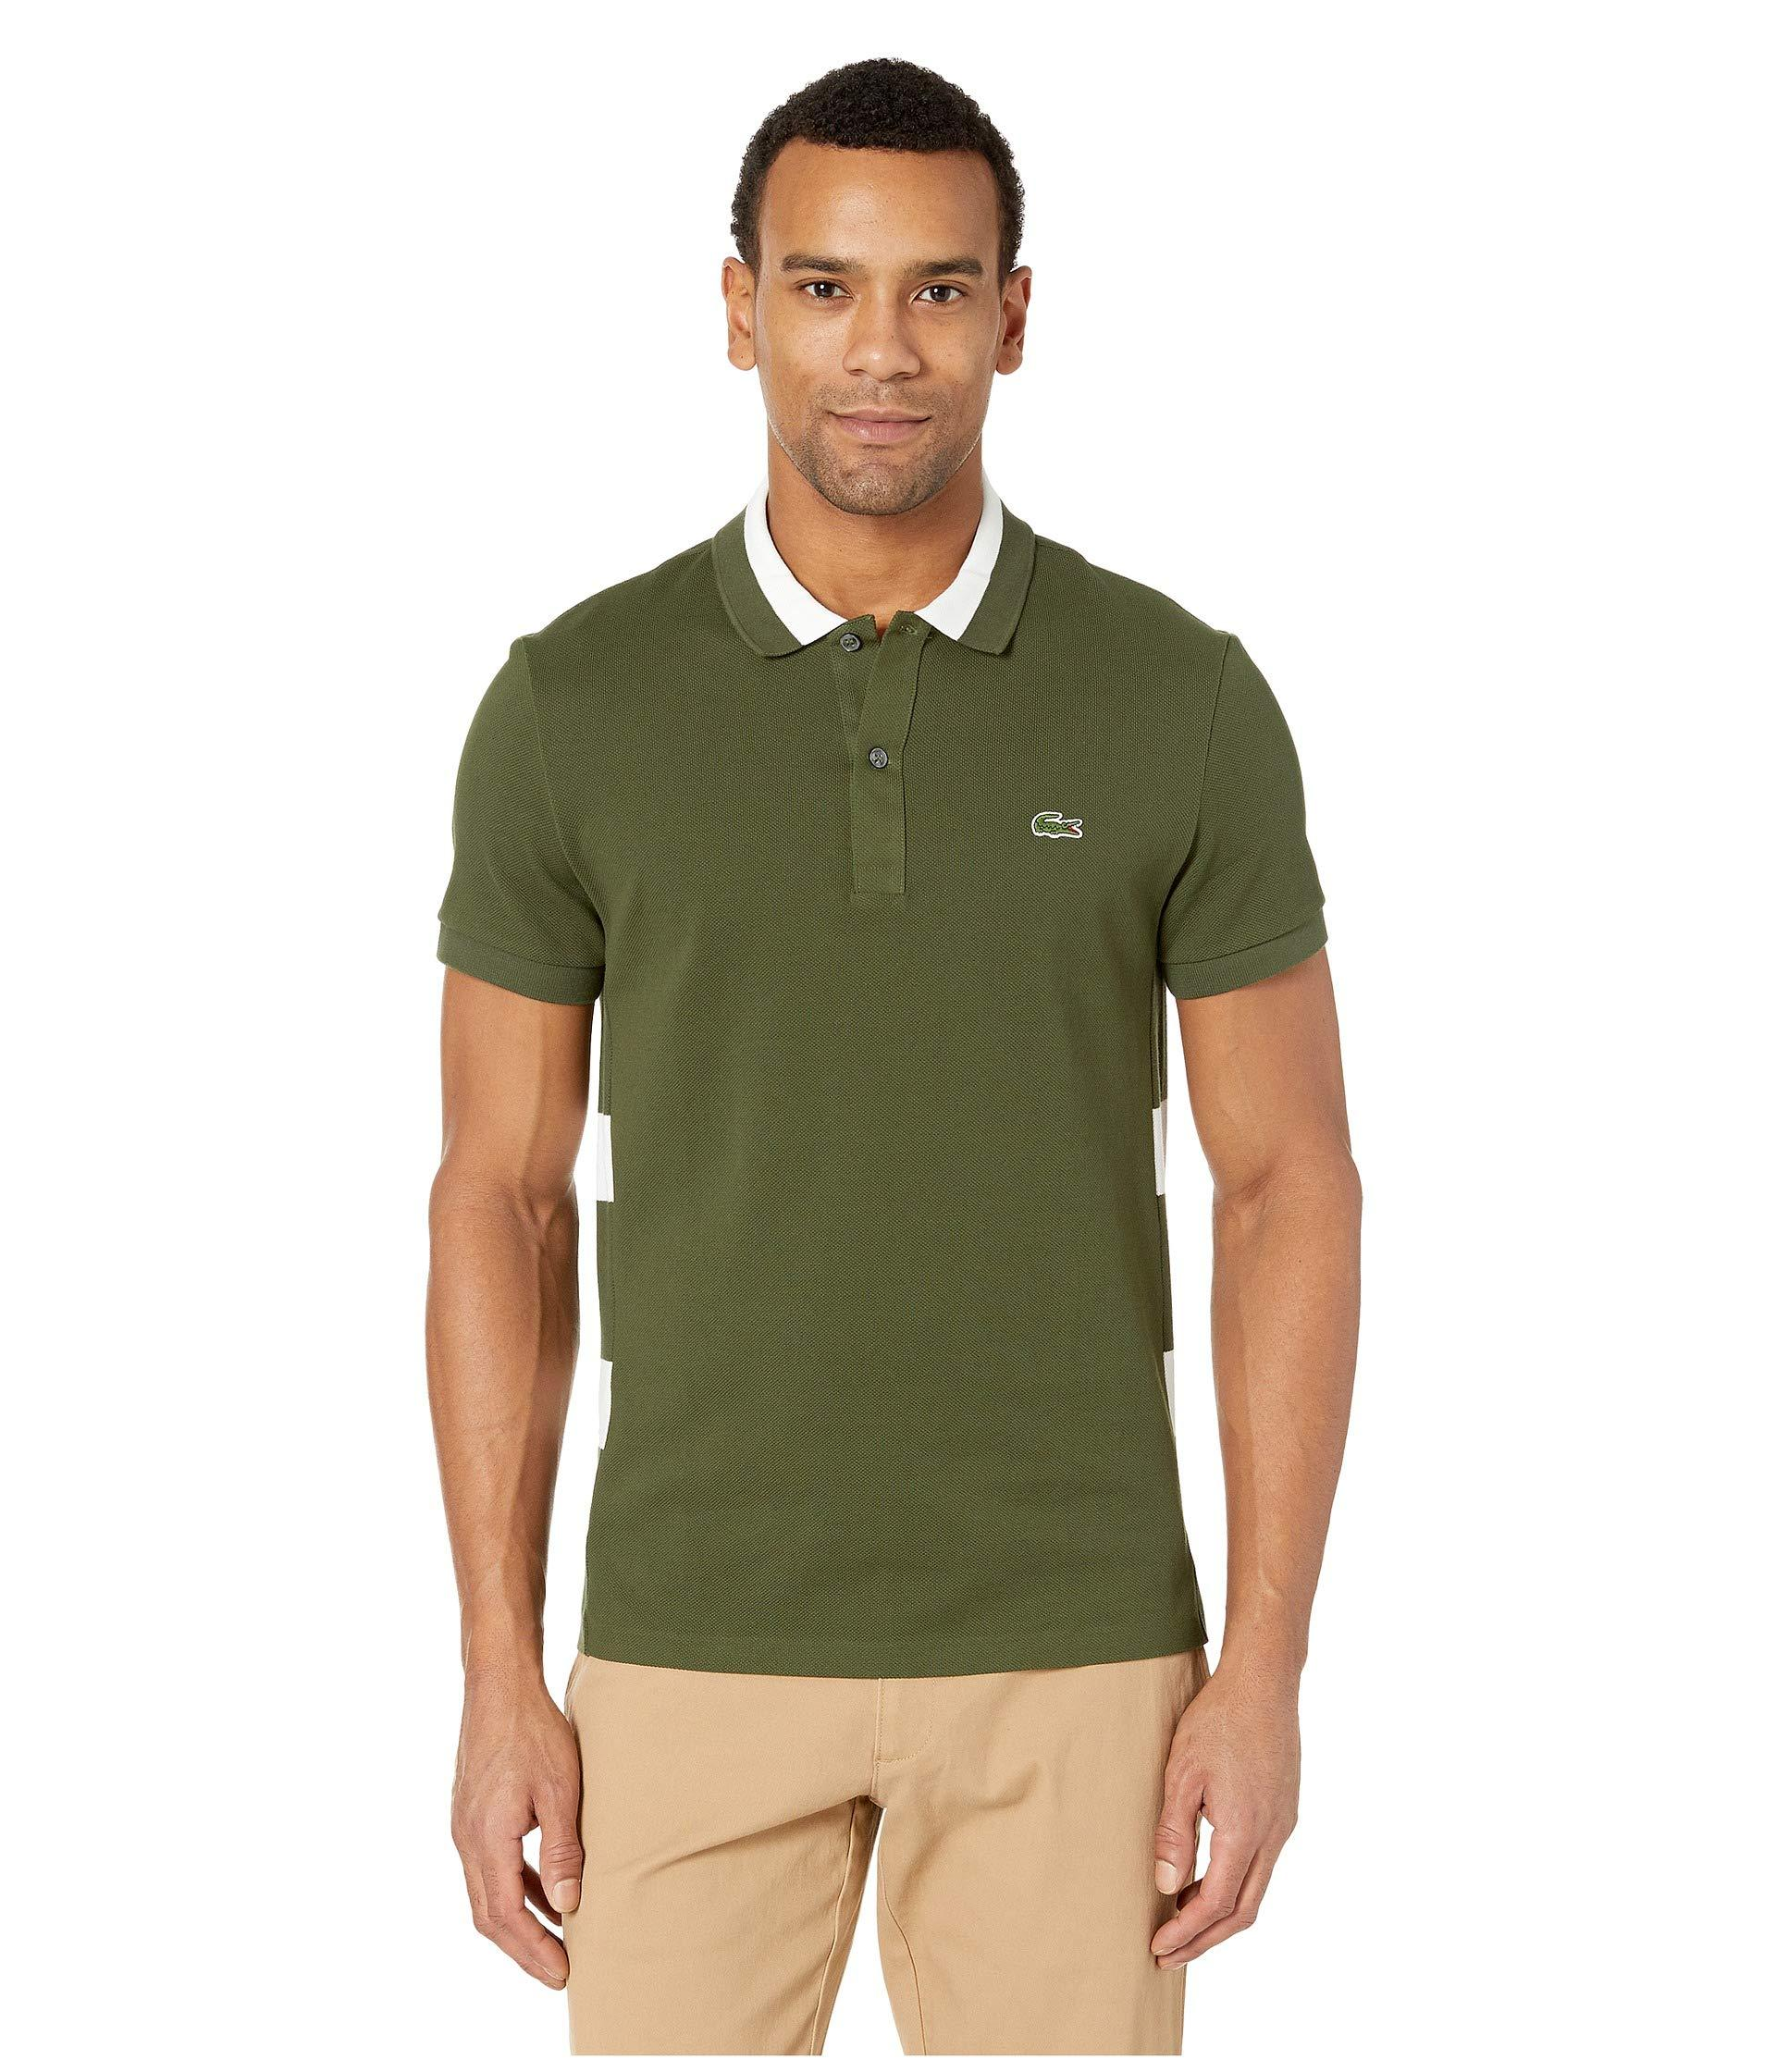 2f15aa3c4 Lacoste Short Sleeve 3 Ply Textured Pique Regular Fit Polo in Green ...